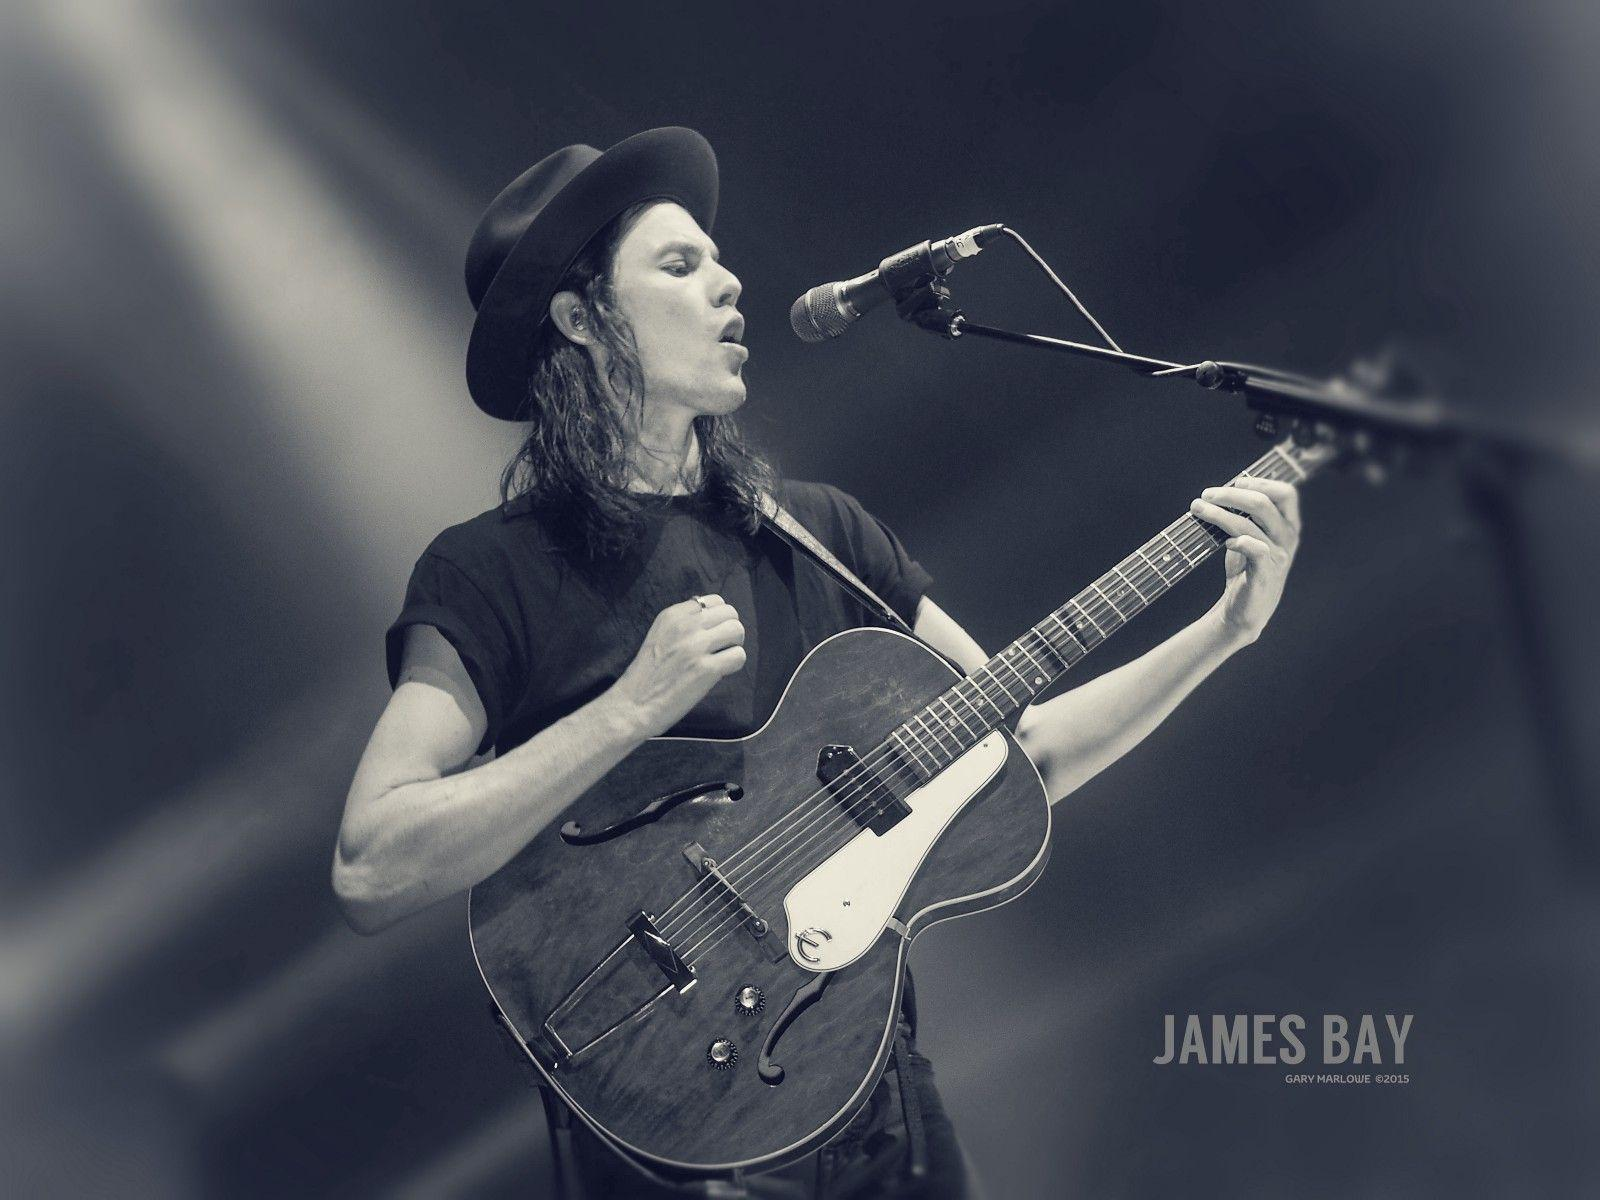 Shot! James Bay at The Dome, Brighton – Gary Marlowe – Medium